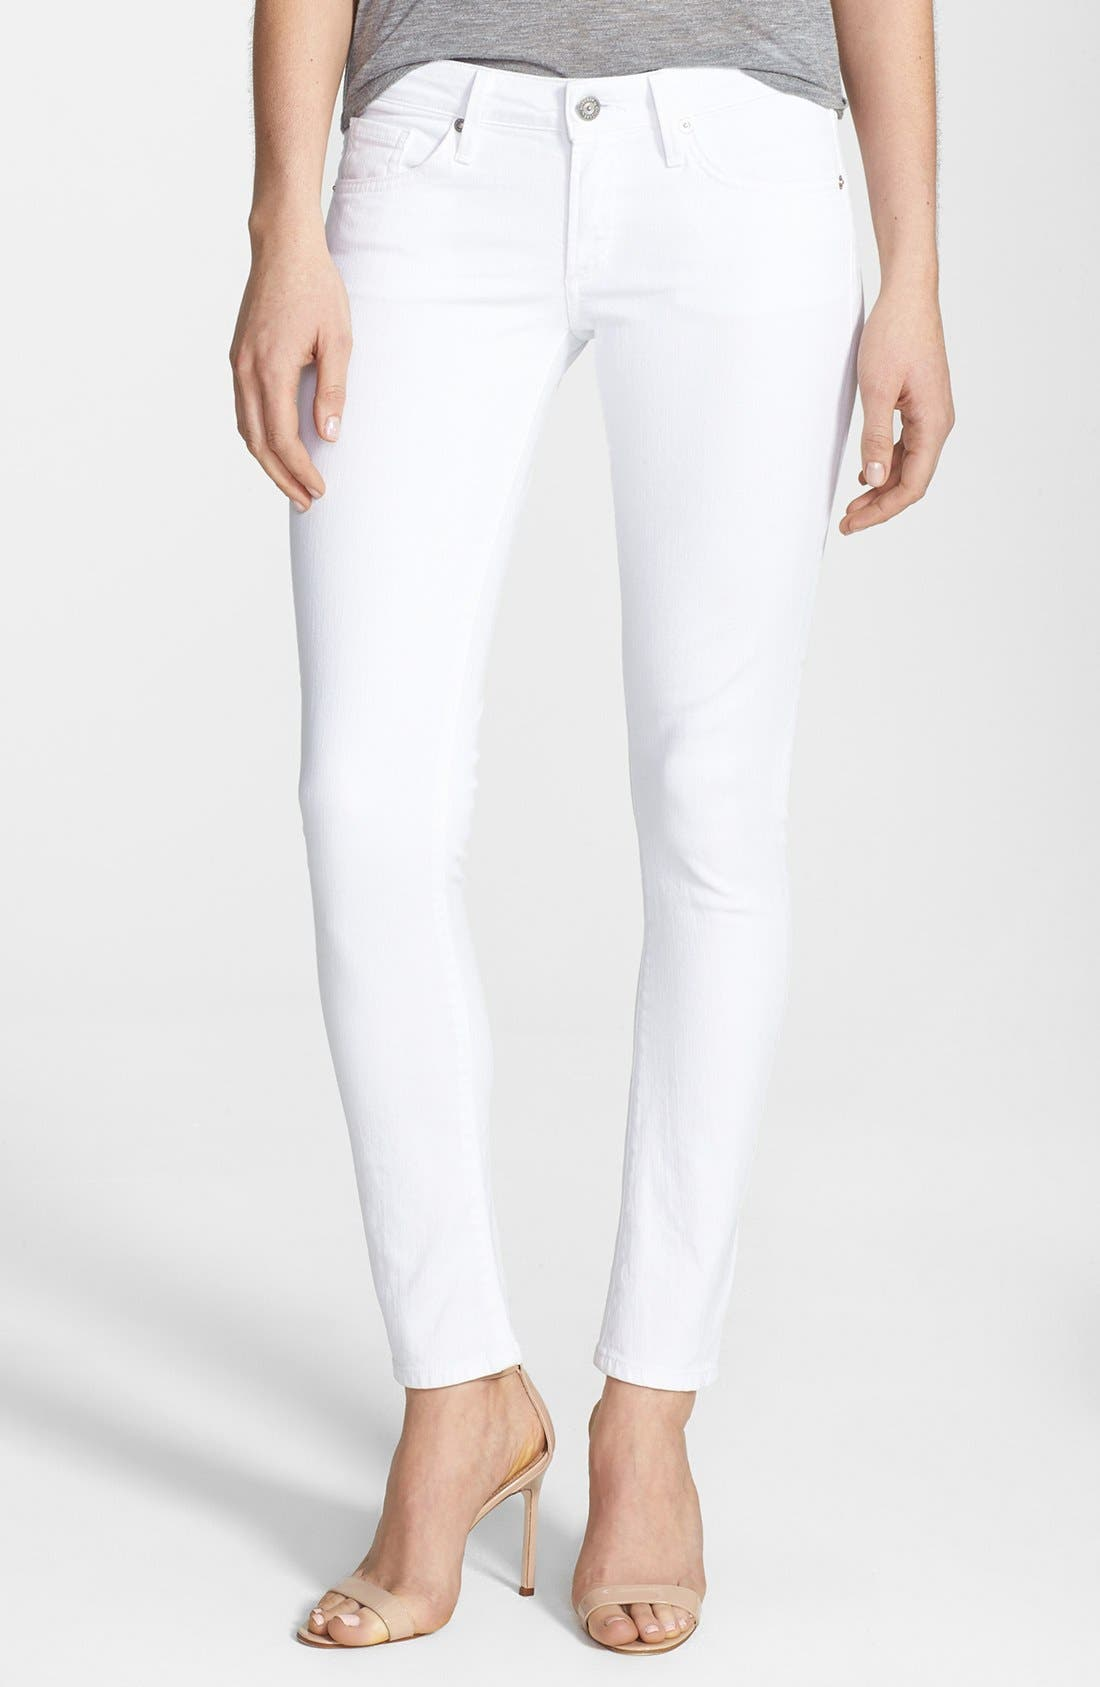 Alternate Image 1 Selected - Citizens of Humanity 'Racer' Low Rise Skinny Jeans (Santorini White)